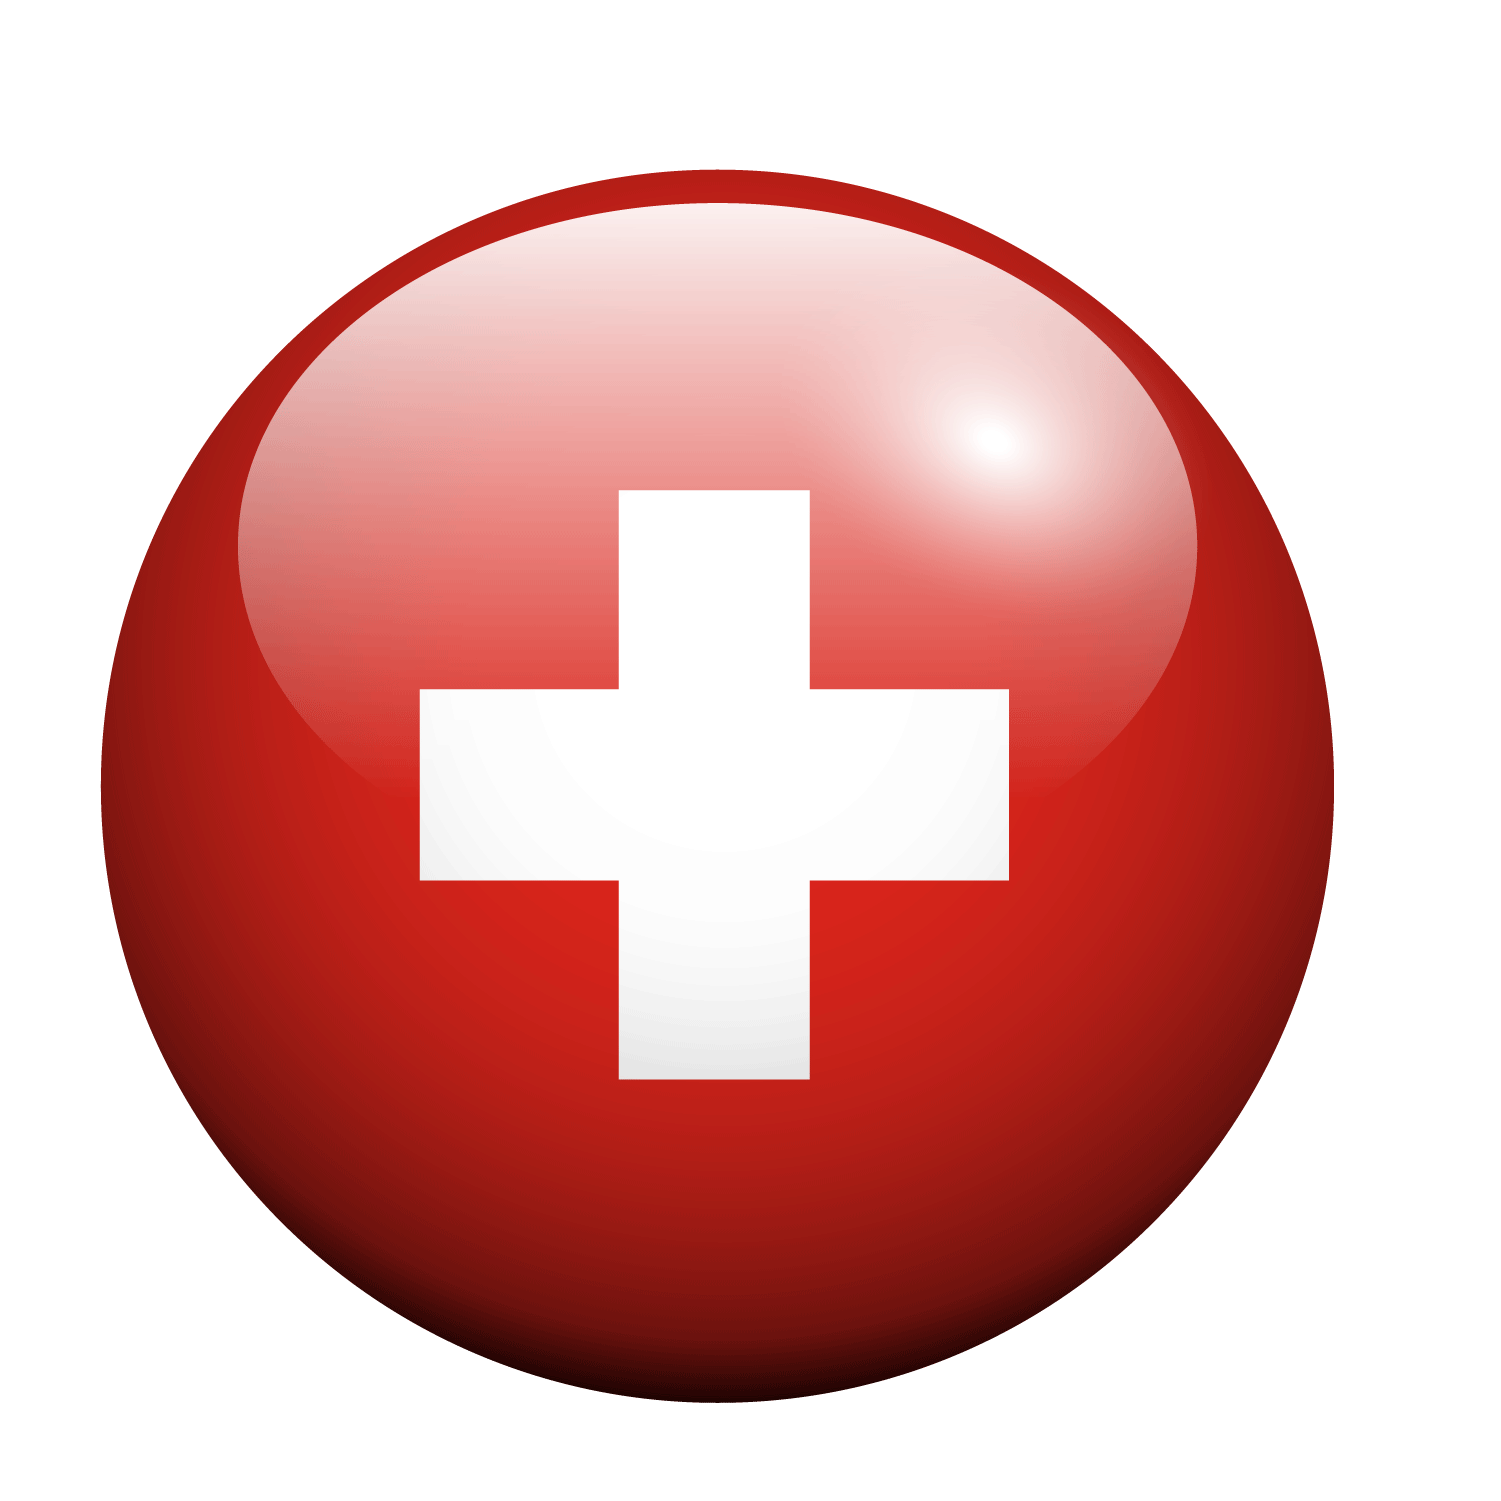 Red cross out png. Vector circle texture transprent